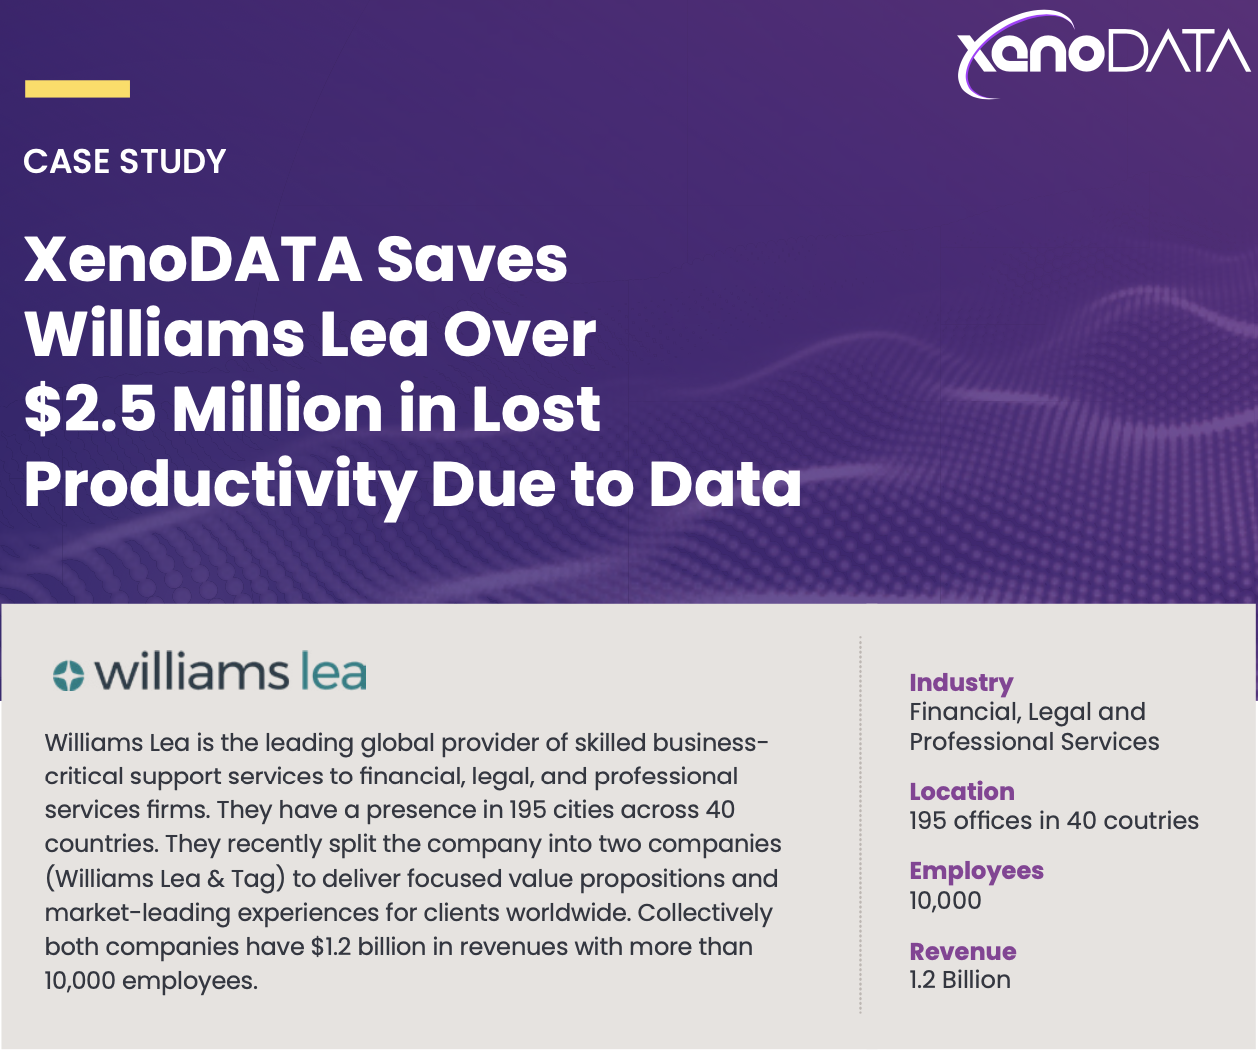 Williams Lea Drives $2.5M in productivity improvement with data.